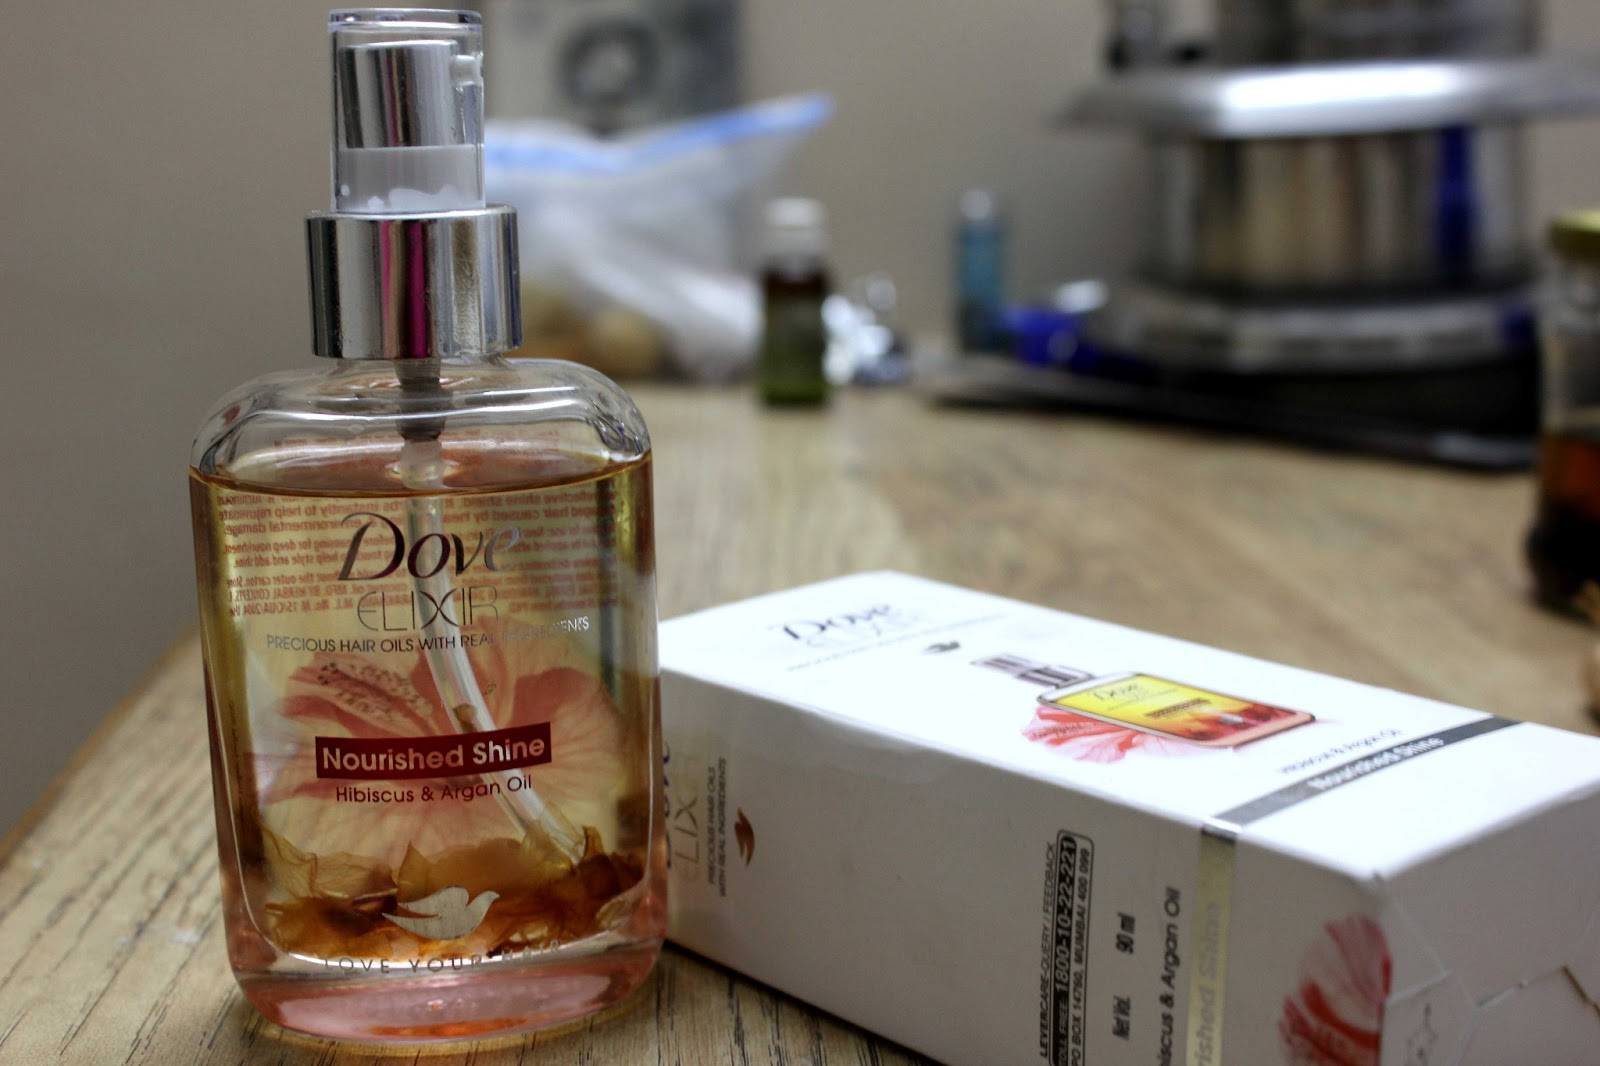 Dove Elixir Nourished Shine Hibiscus & Argan Oil Product Preview at Perfect Skin Care for you